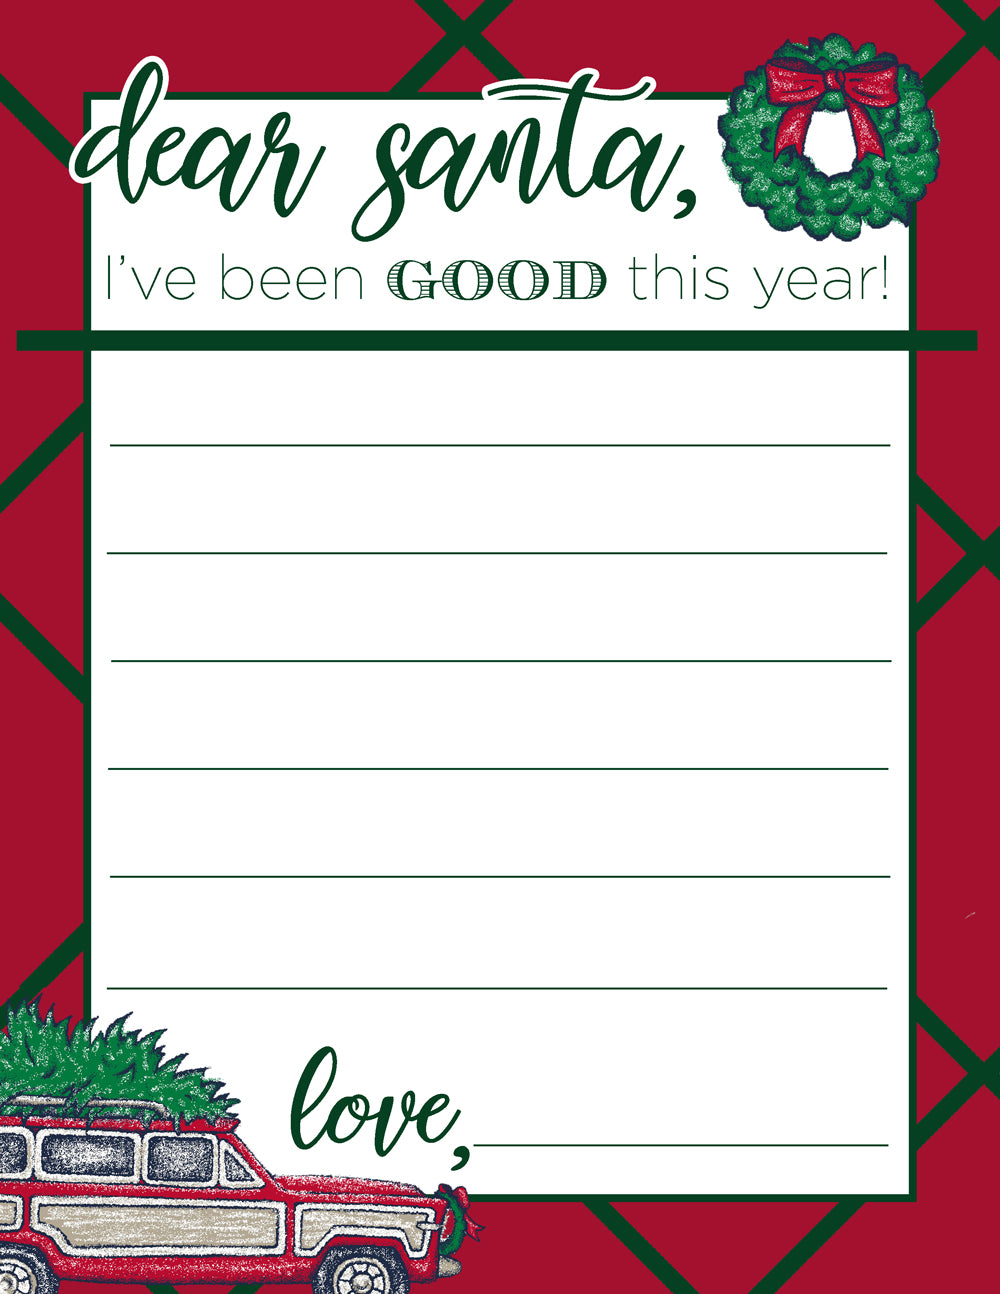 Dear Santa... // The Beaufort Bonnet Company | The Well To Do Review